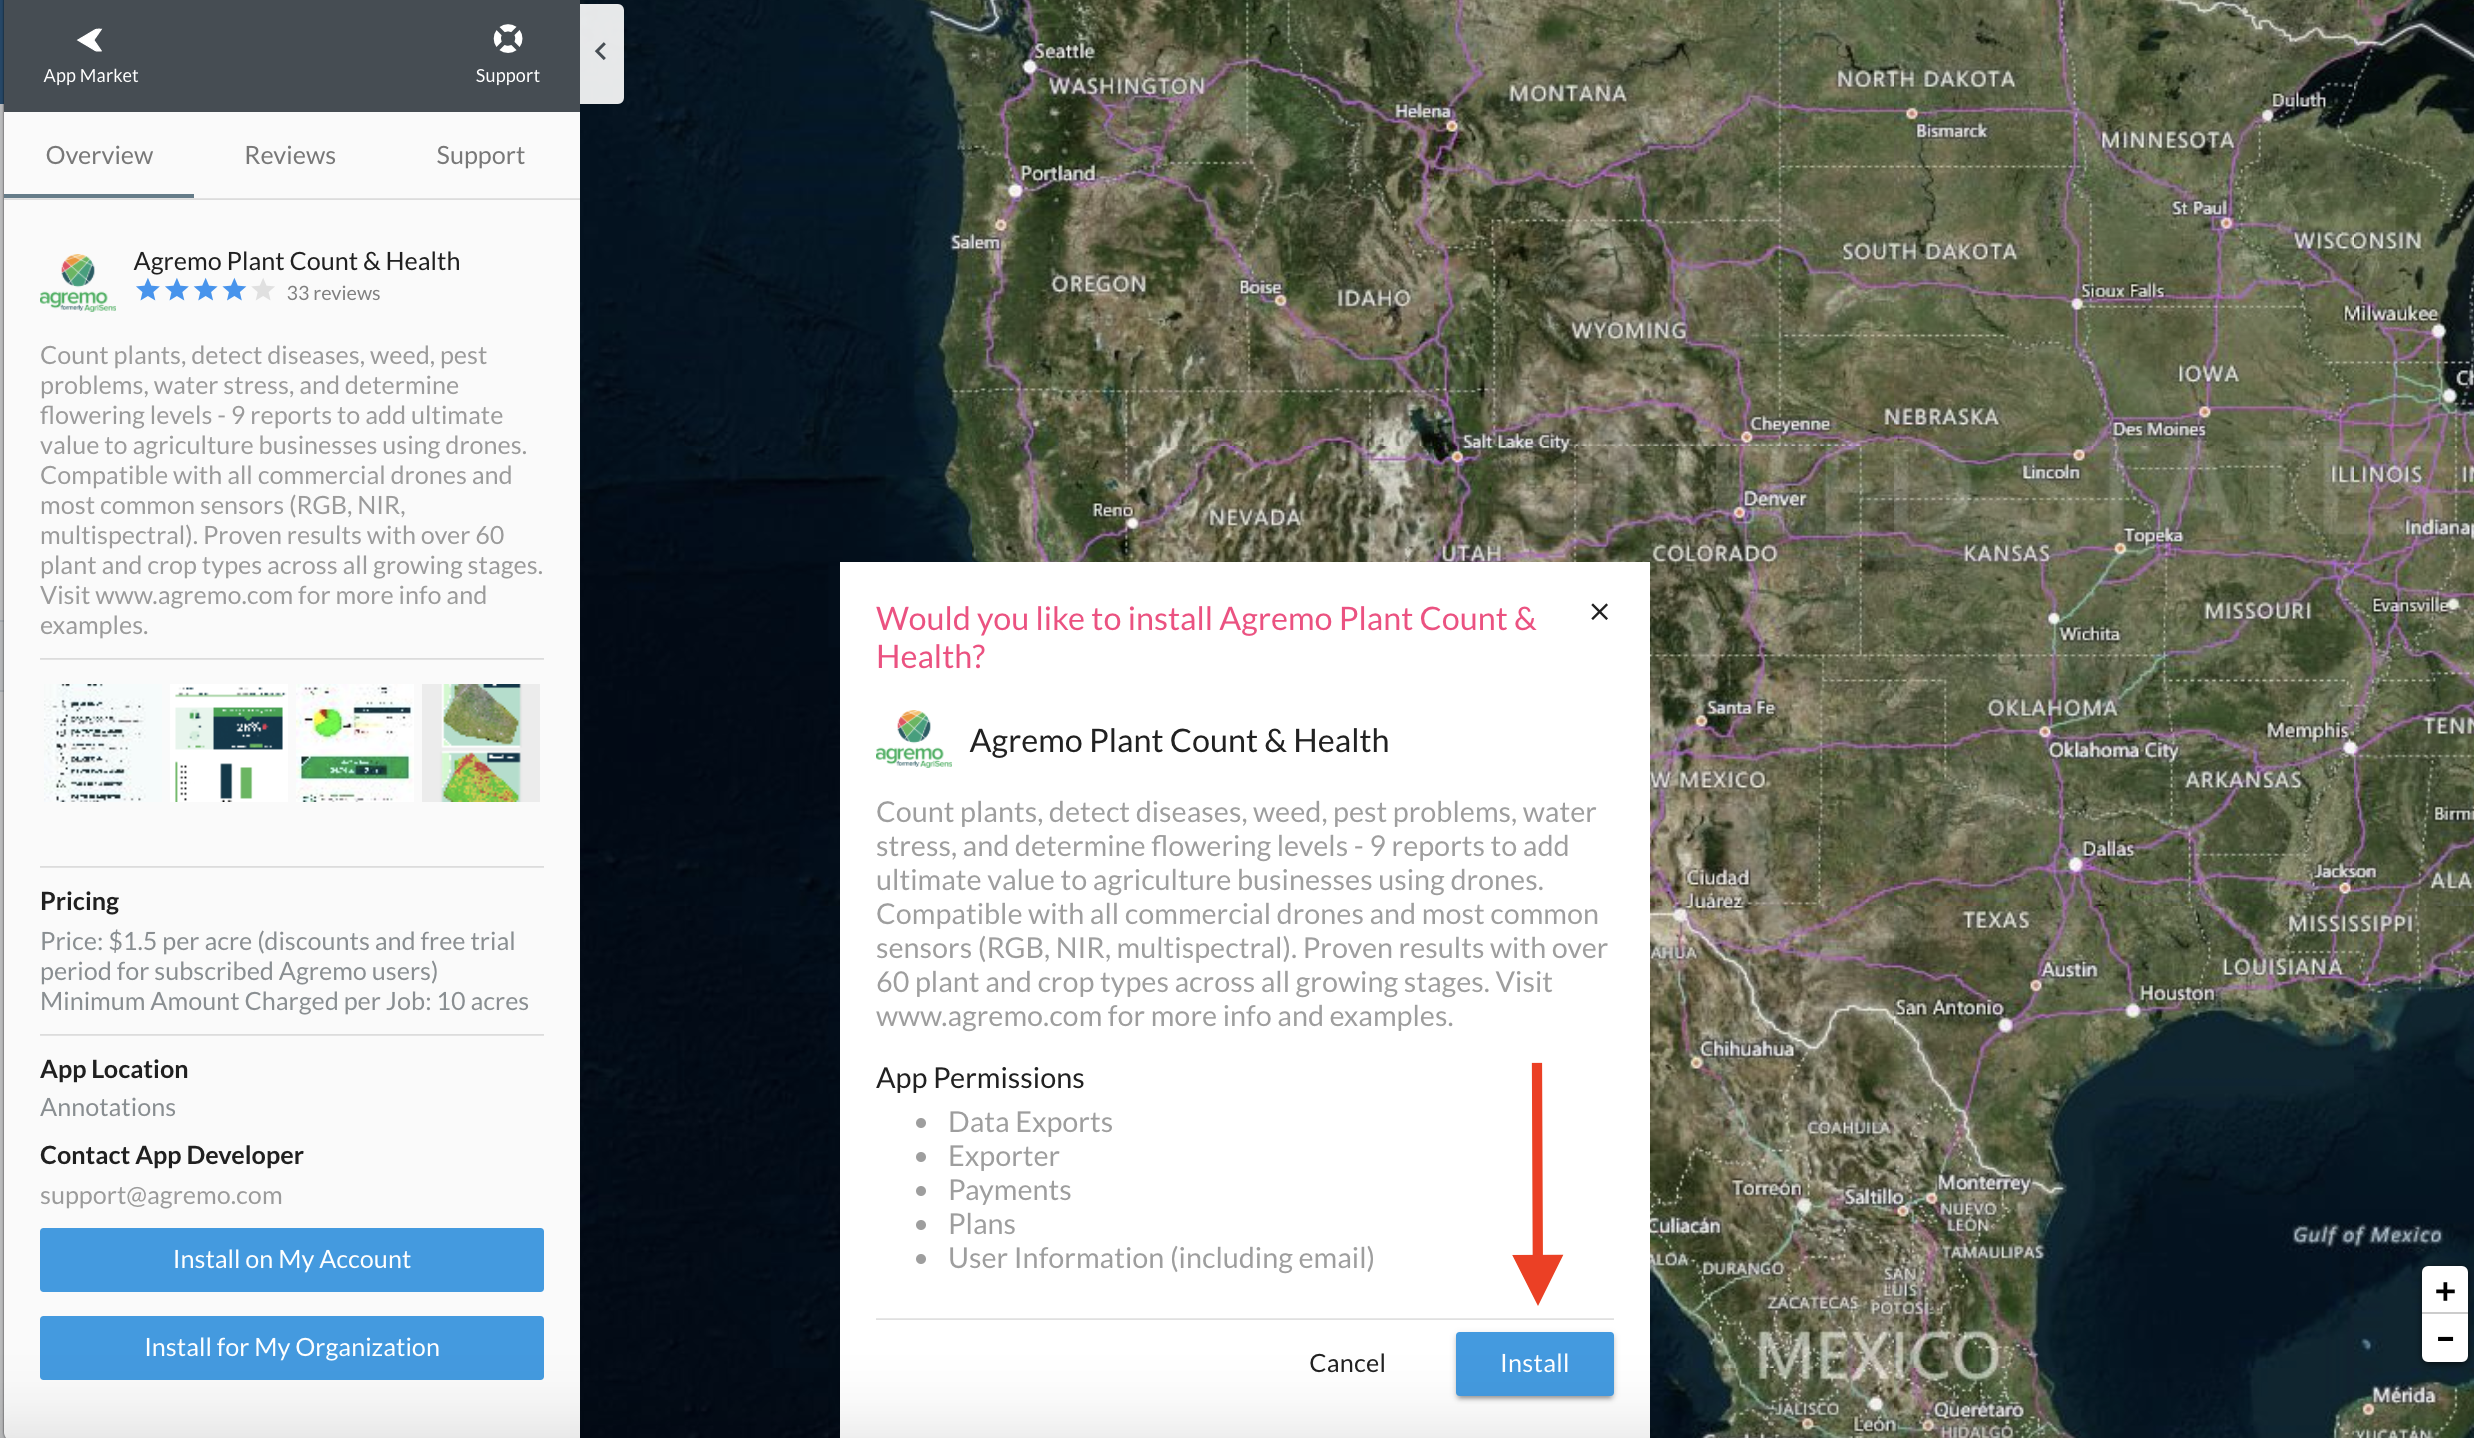 Install Agremo App from the DroneDeploy App Market